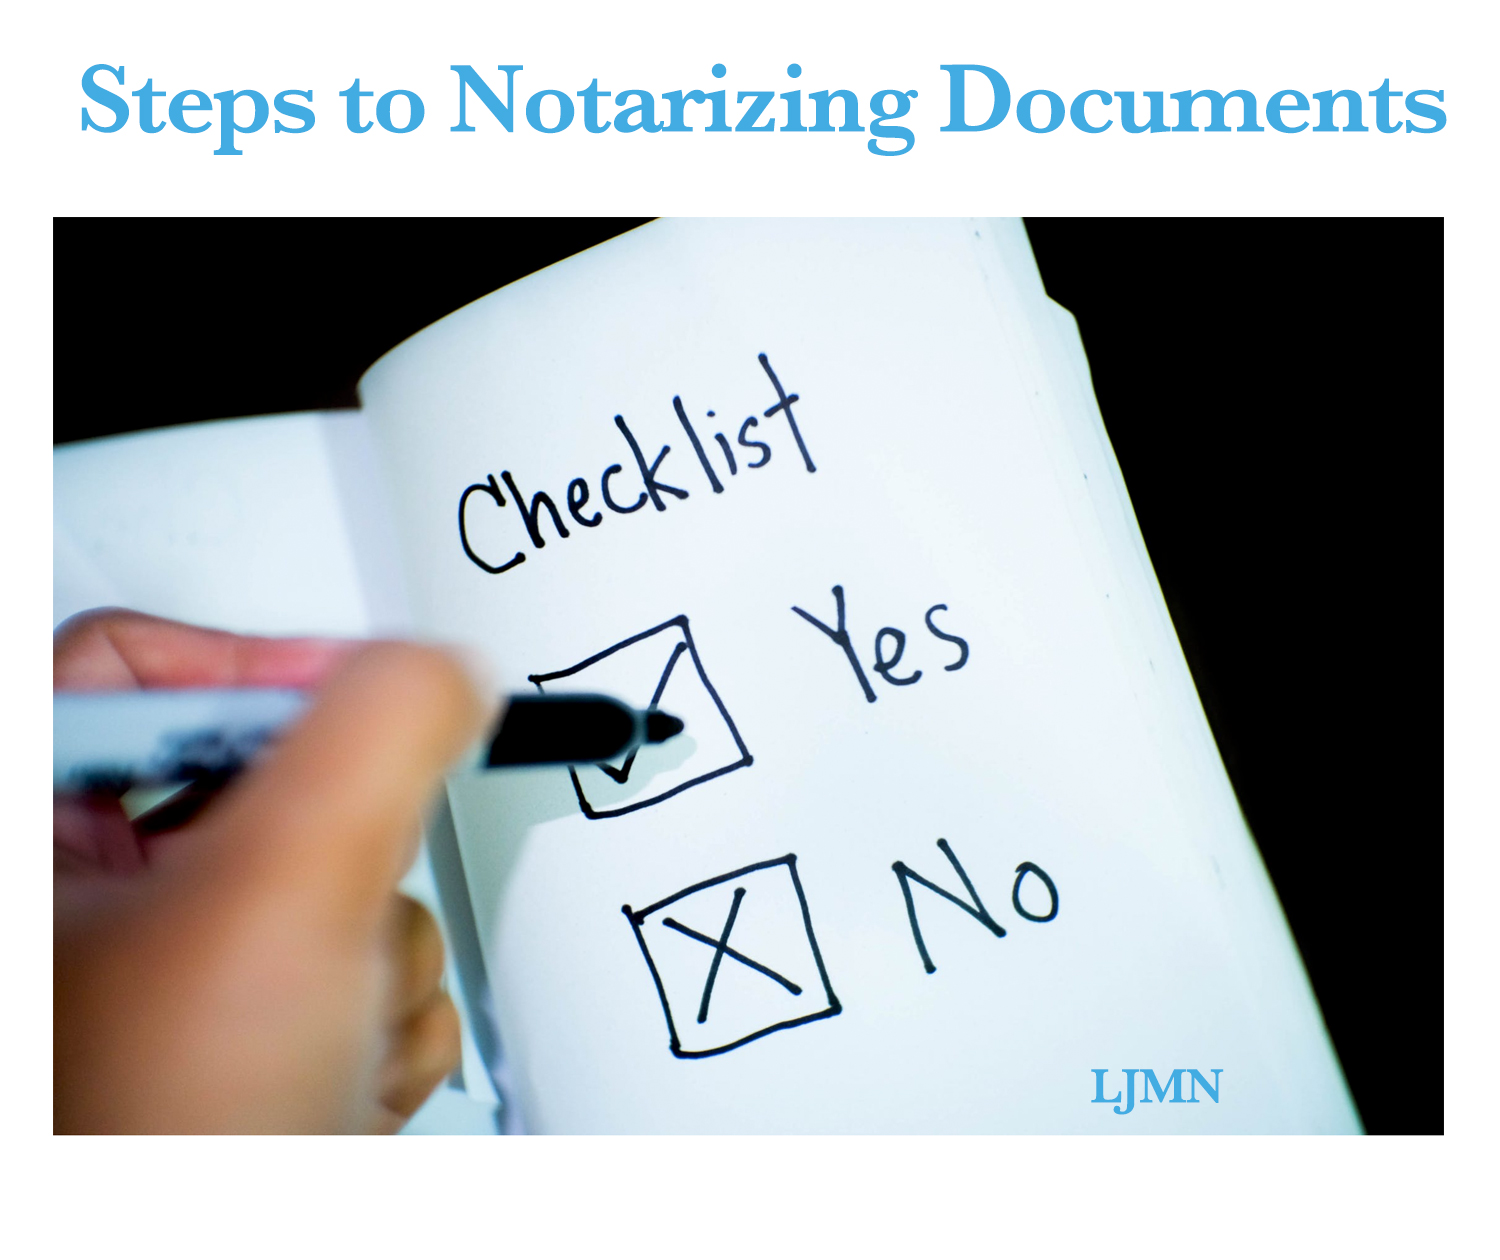 Steps to Notarizing Documents